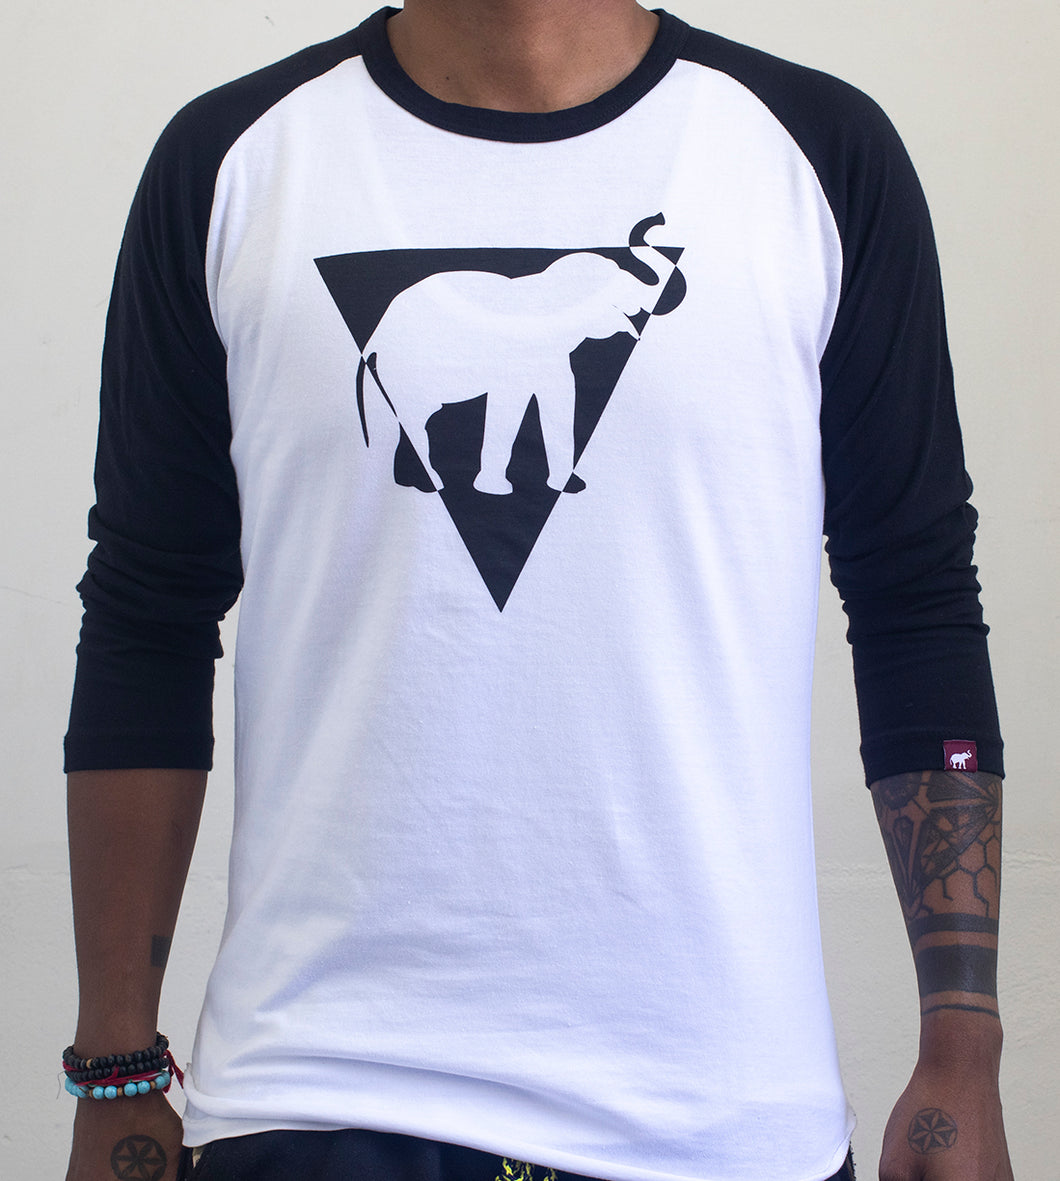 Black Eye Triangle Baseball tee